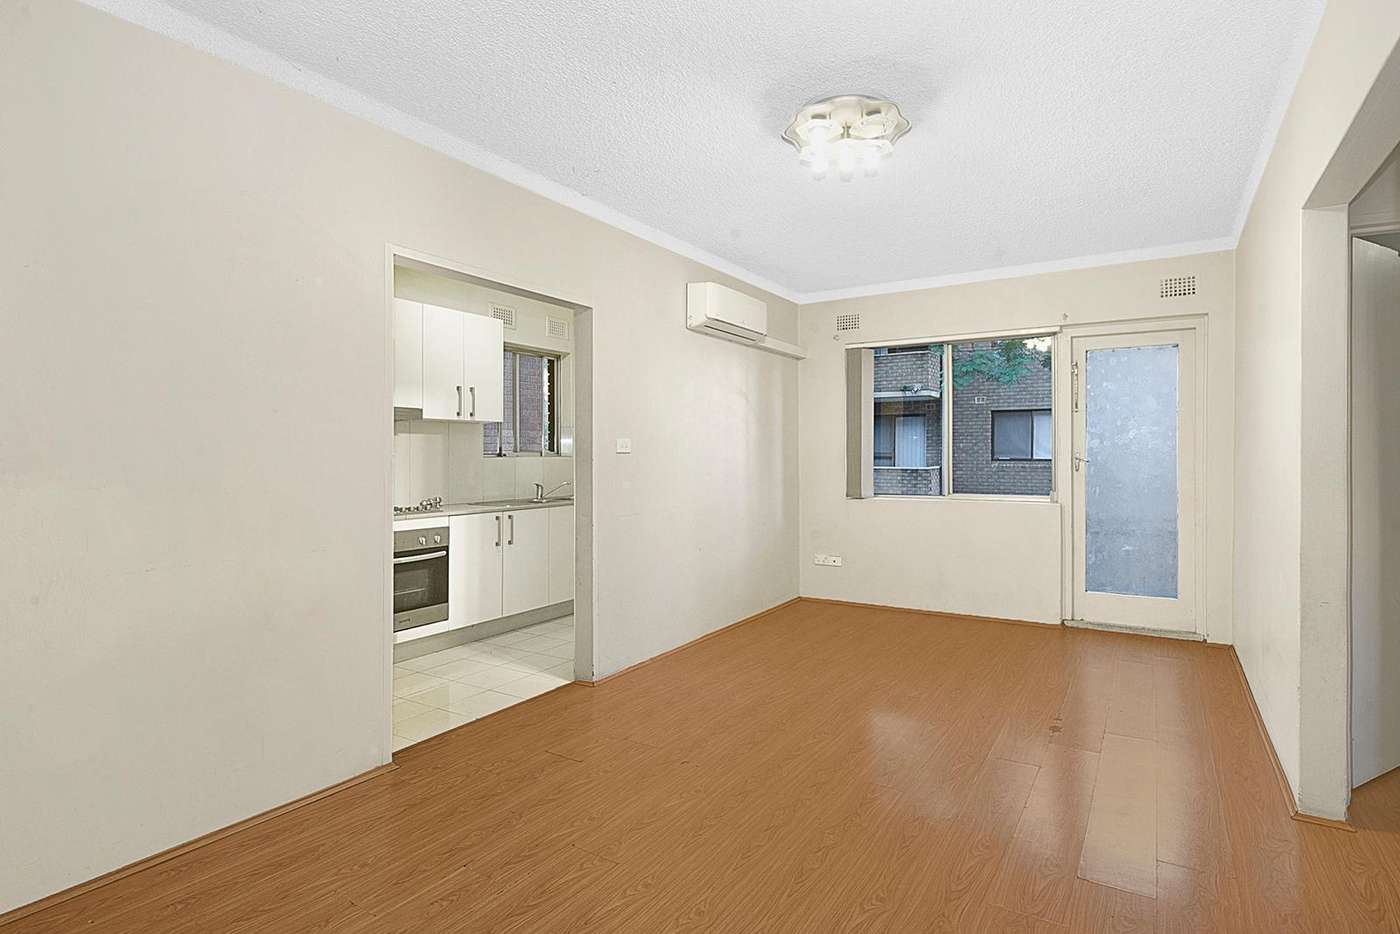 Main view of Homely apartment listing, 8/19 Parkes Street, Harris Park NSW 2150